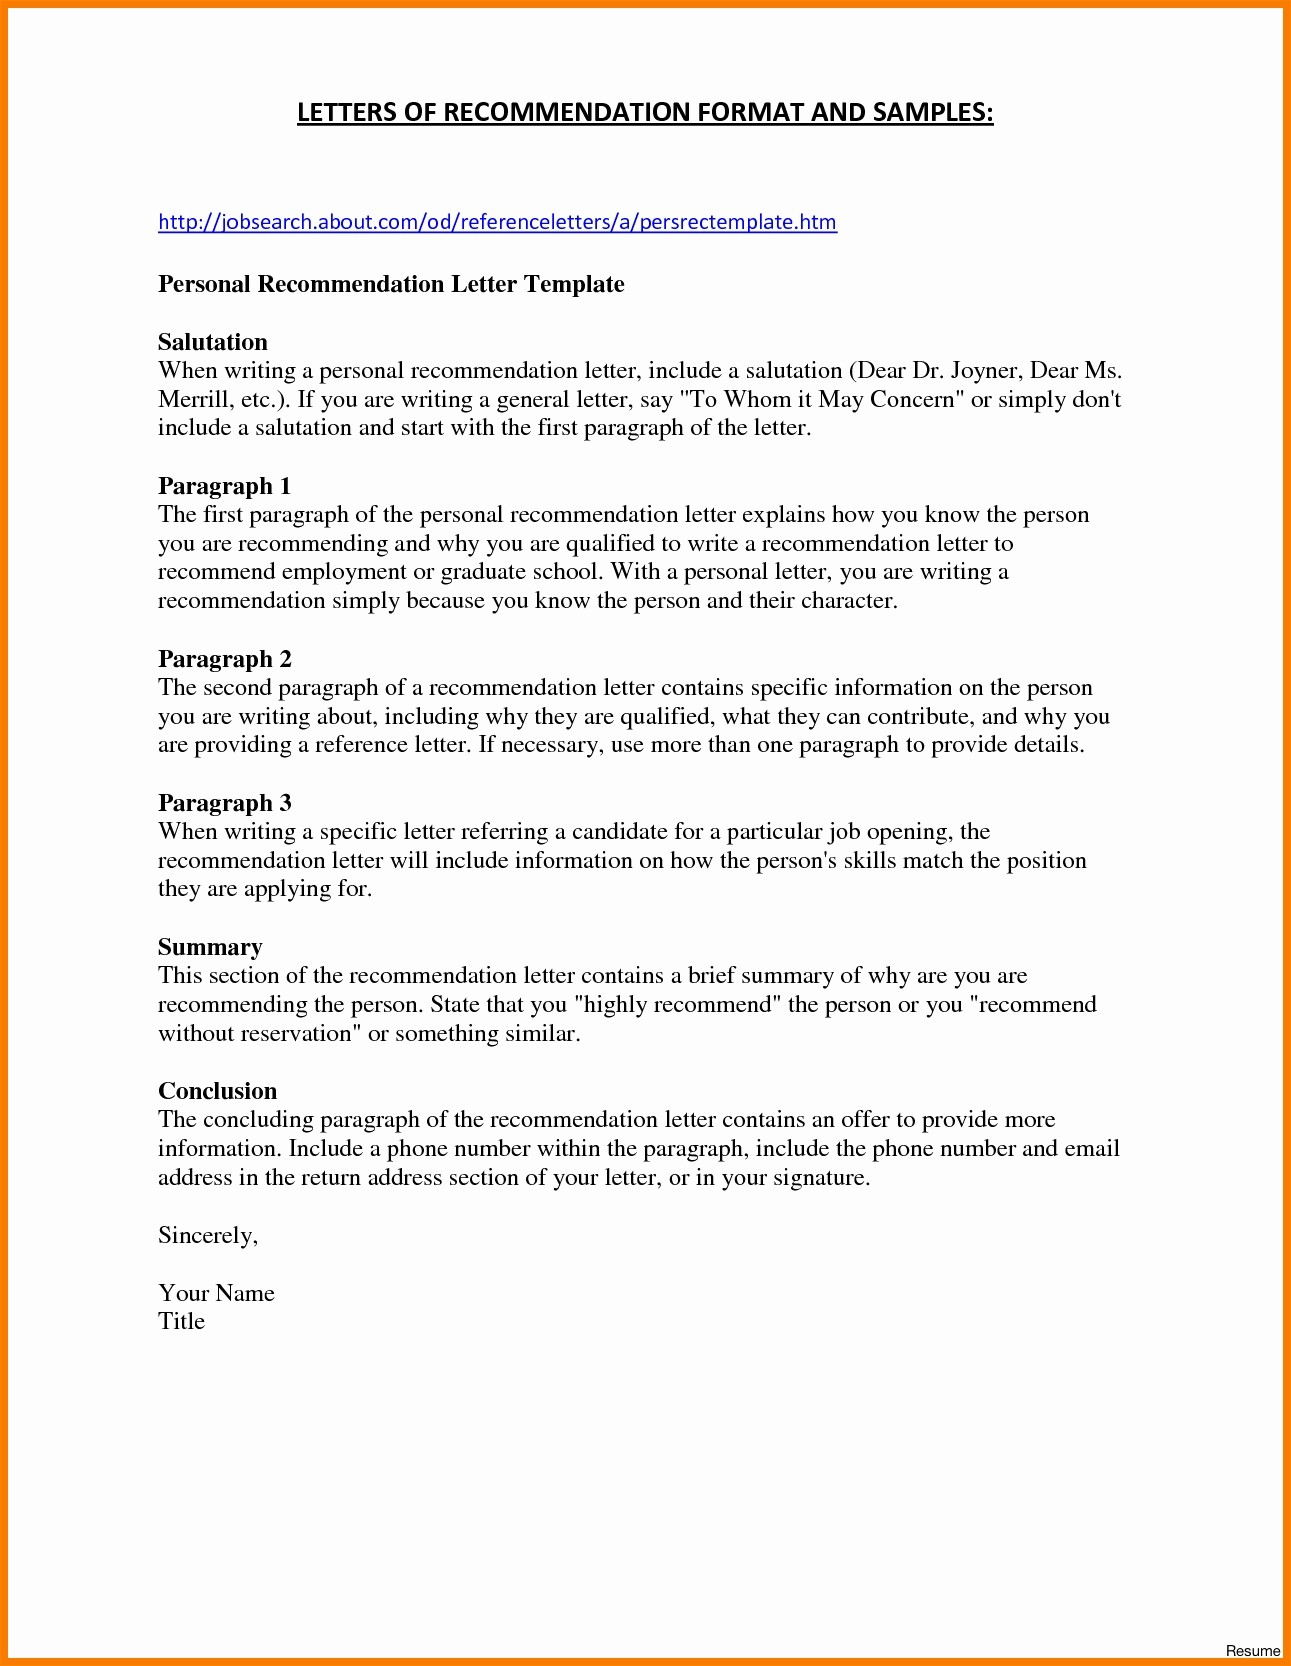 Employee Relocation Letter Template - Job Relocation Letter Sample Valid Business Relocation Letter